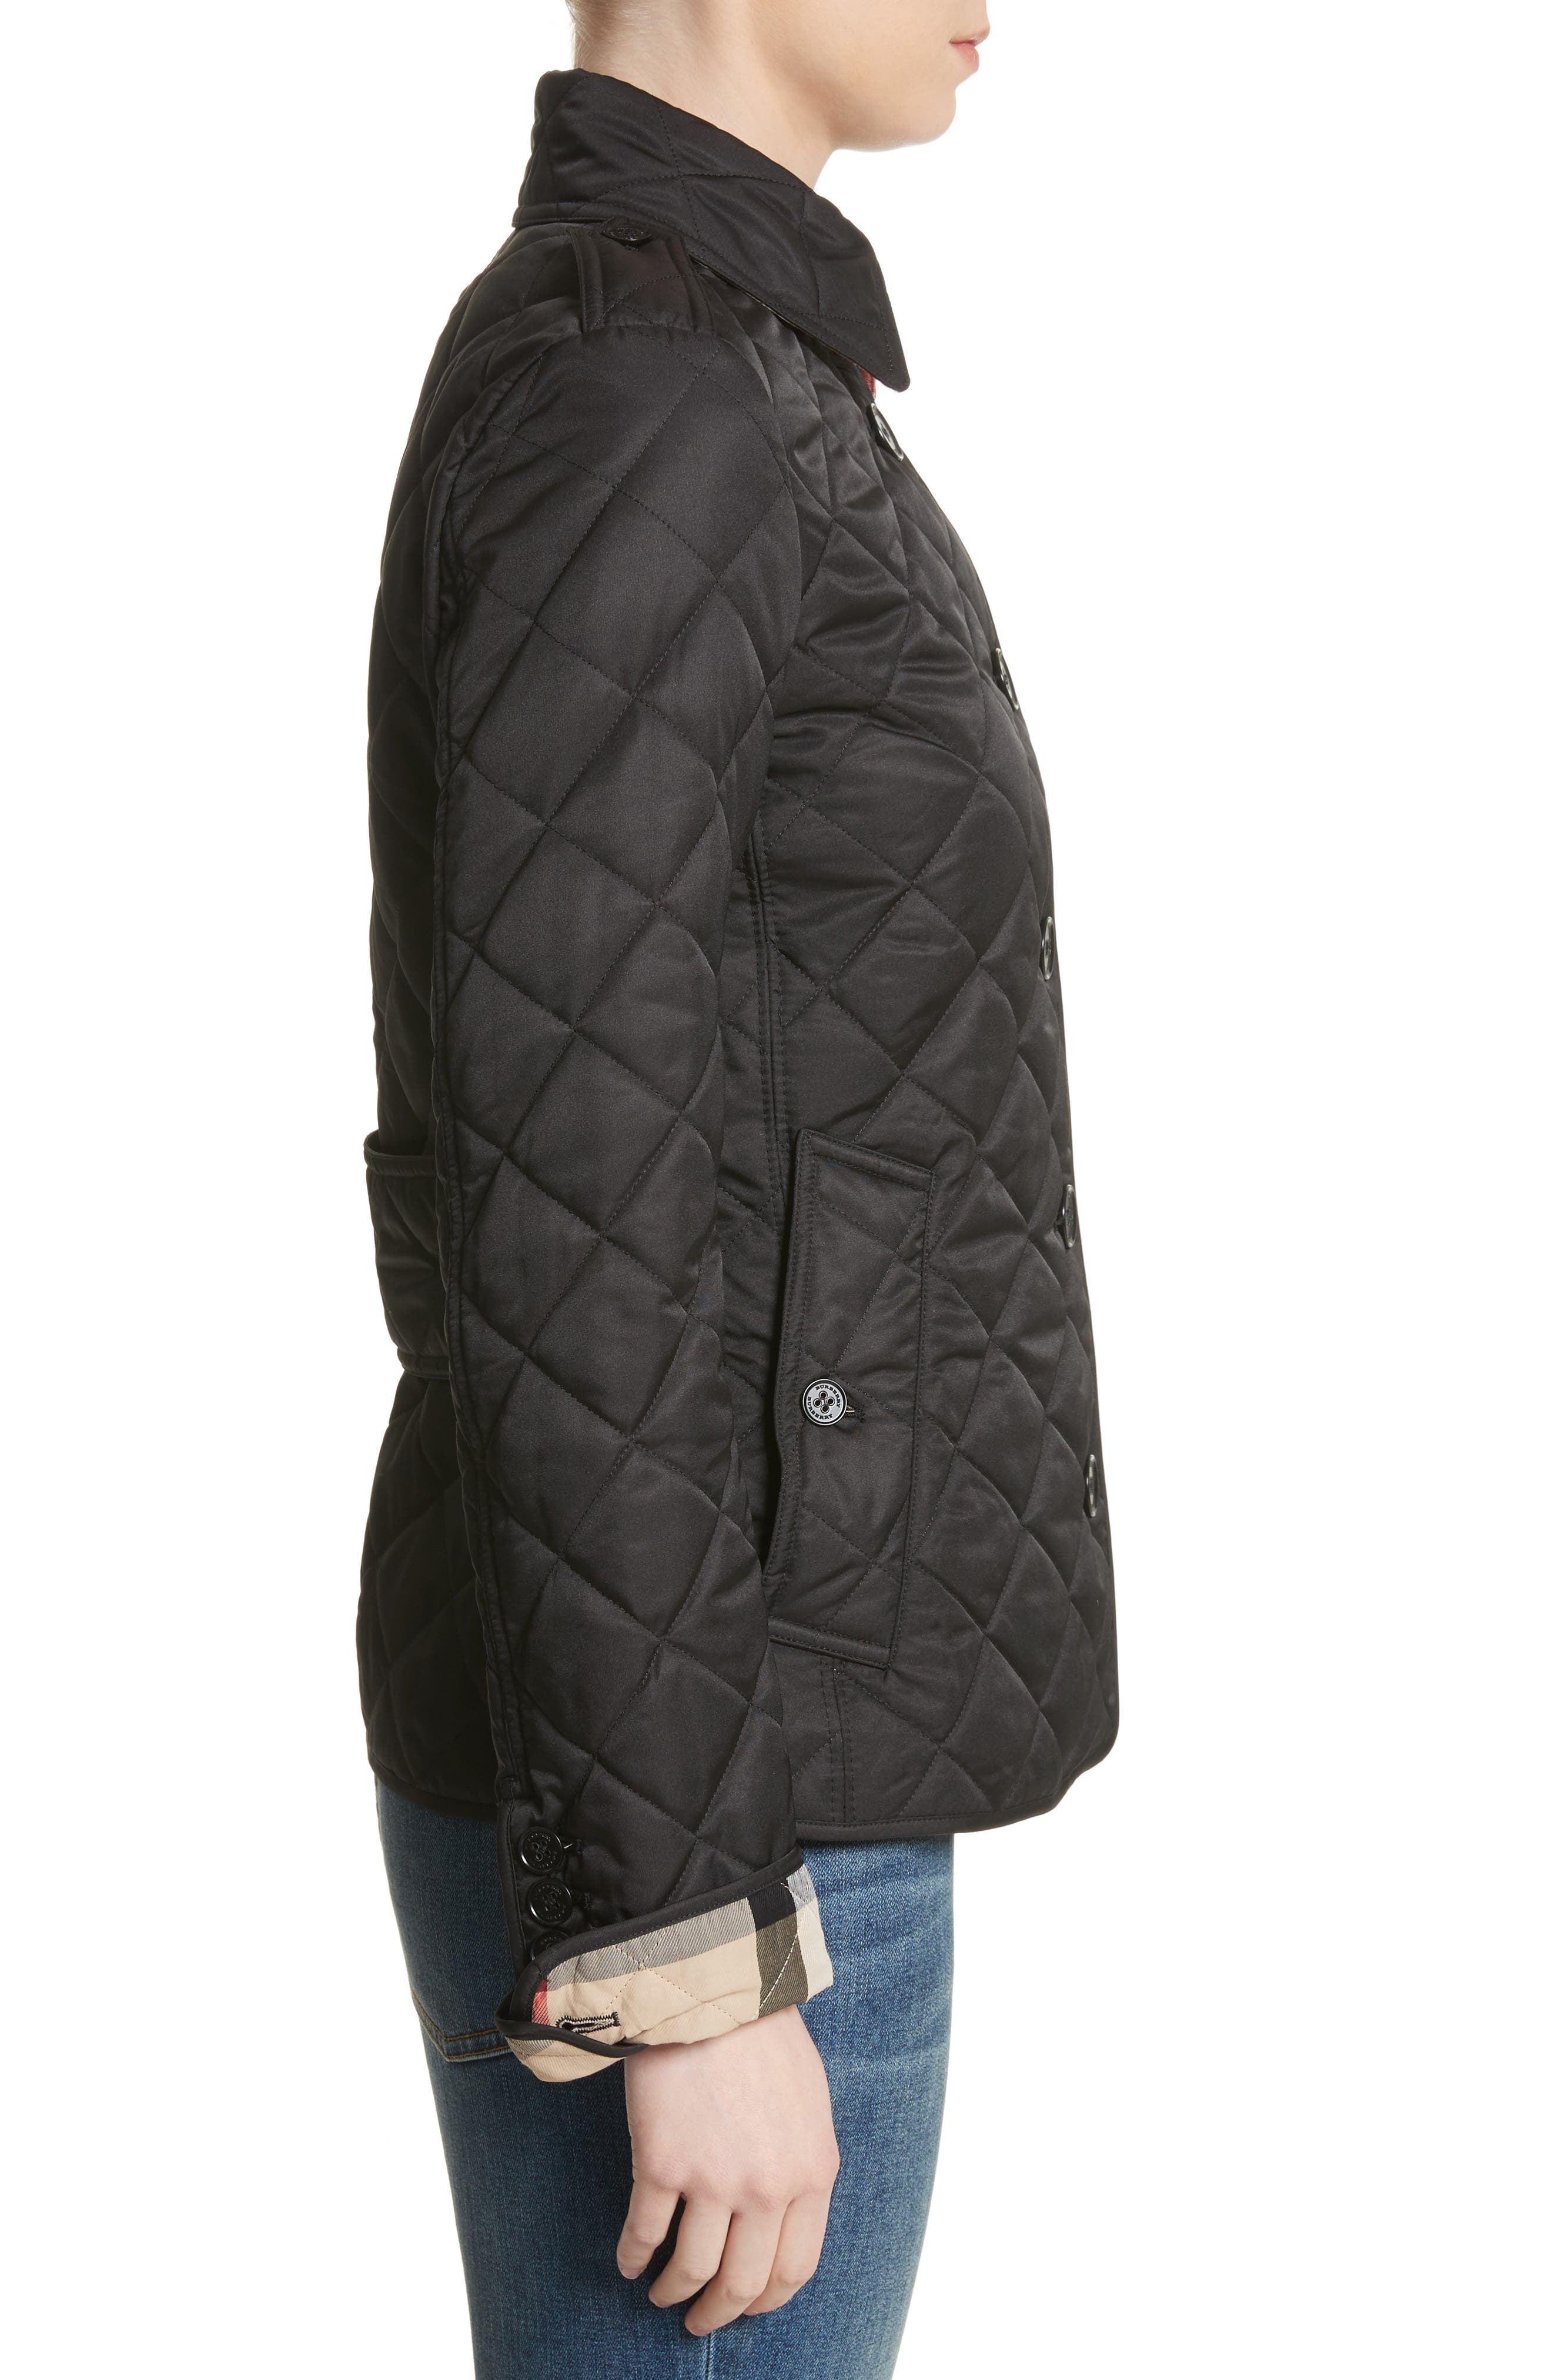 BURBERRY, Frankby Quilted Jacket, Alternate thumbnail 3, color, 001